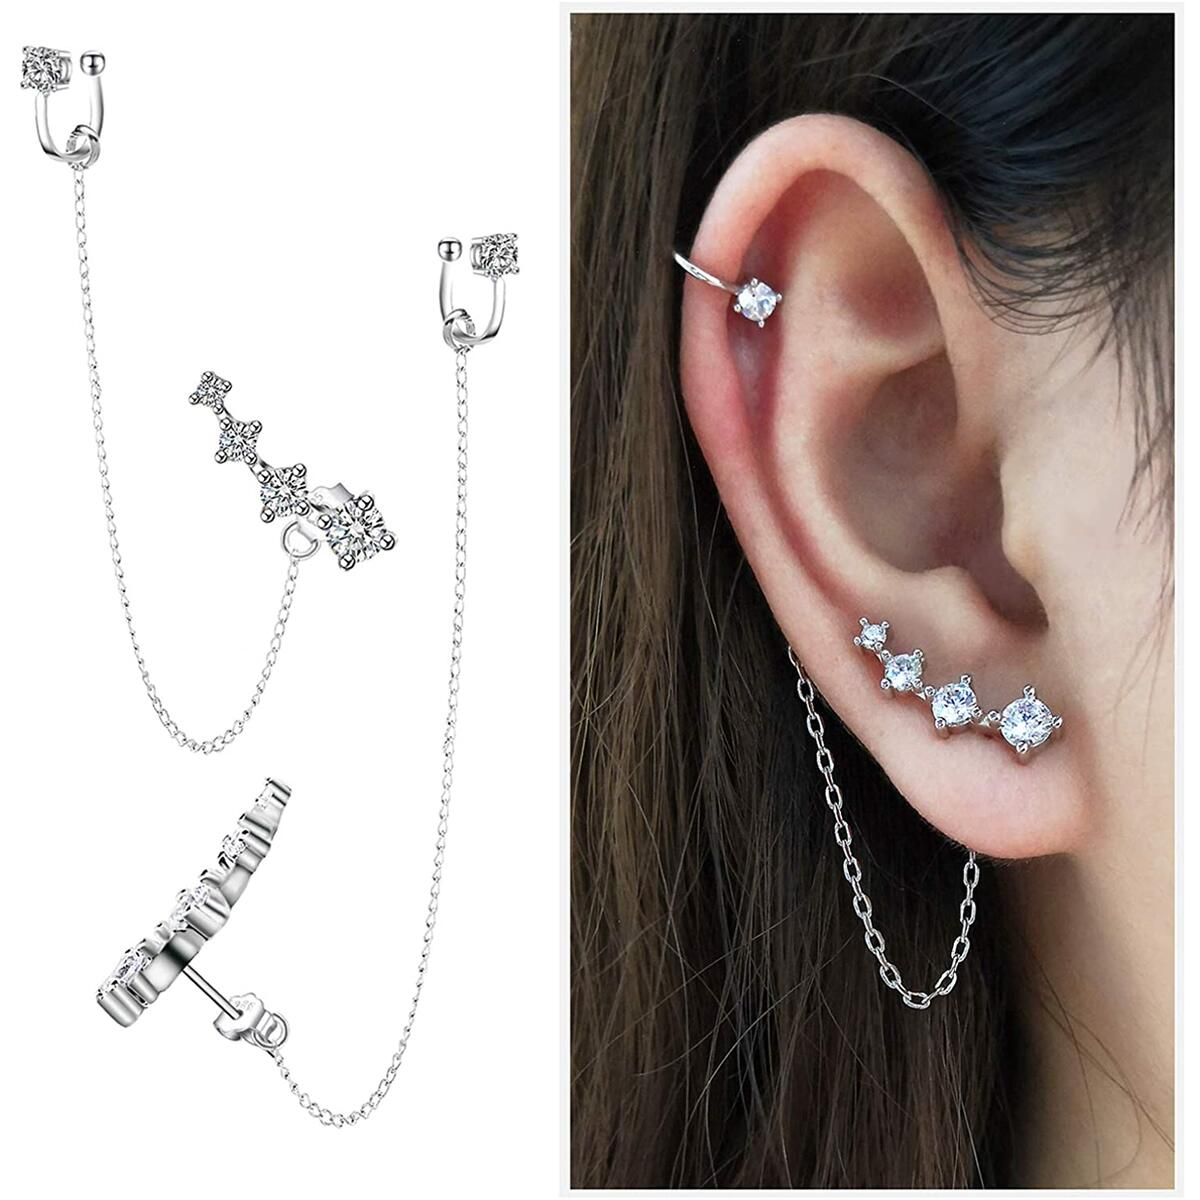 CZ 925 Sterling Silver 14K White Gold Plated Ear Crawler Hypoallergenic 4 Crystals Stud Earring with Chain Threader Earrings for Women